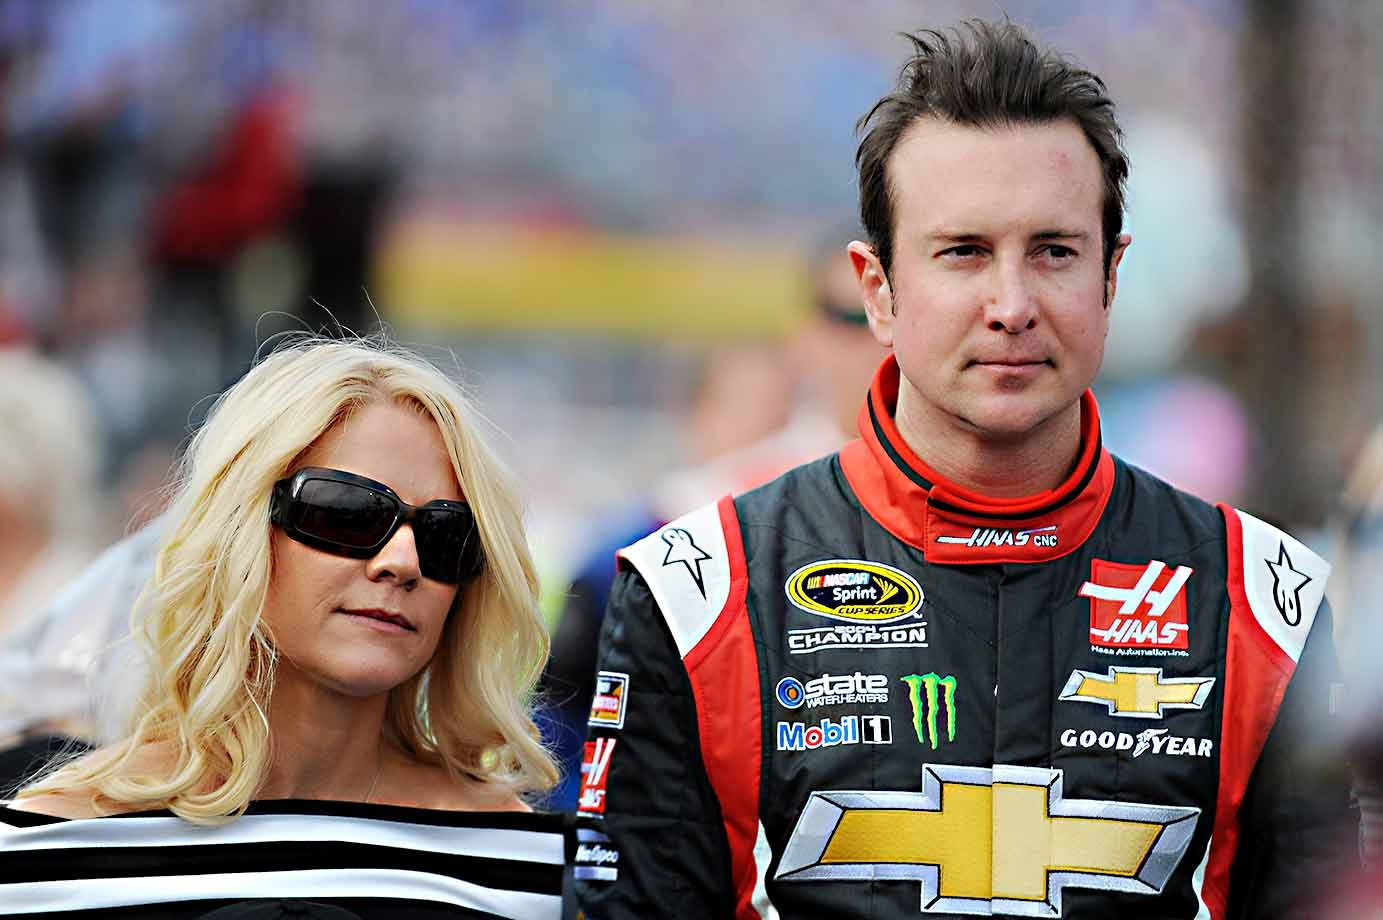 Just before the end of the 2014 season, the 2004 Sprint Cup champion was accused of assaulting his ex-girlfriend, Patricia Driscoll, during a fall race weekend in Dover, Del. A month later she petitioned a family court there for a restraining order against him, saying he attacked her inside his motor home. A hearing that should've taken an hour or so devolved into a four-part trial that spanned two months and played out like a reboot of War of the Roses. In the end Driscoll got her restraining order (and kept it on appeal) while Busch was suspended for the first three races of the season. Upon returning, he won three races and hung in the '15 championship hunt until the penultimate race of the season at Phoenix.